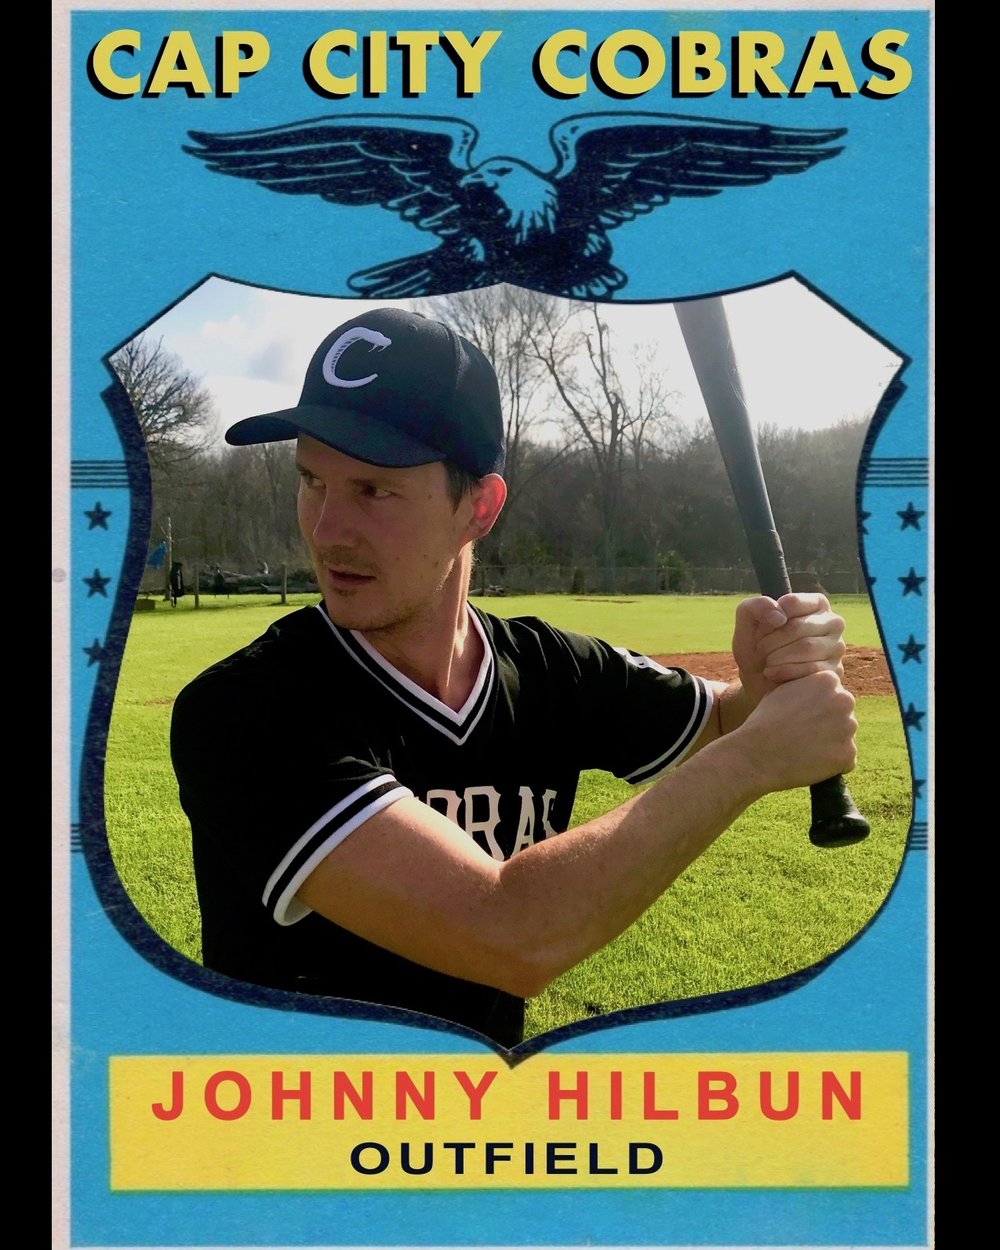 #19 - Johnny Hilbun